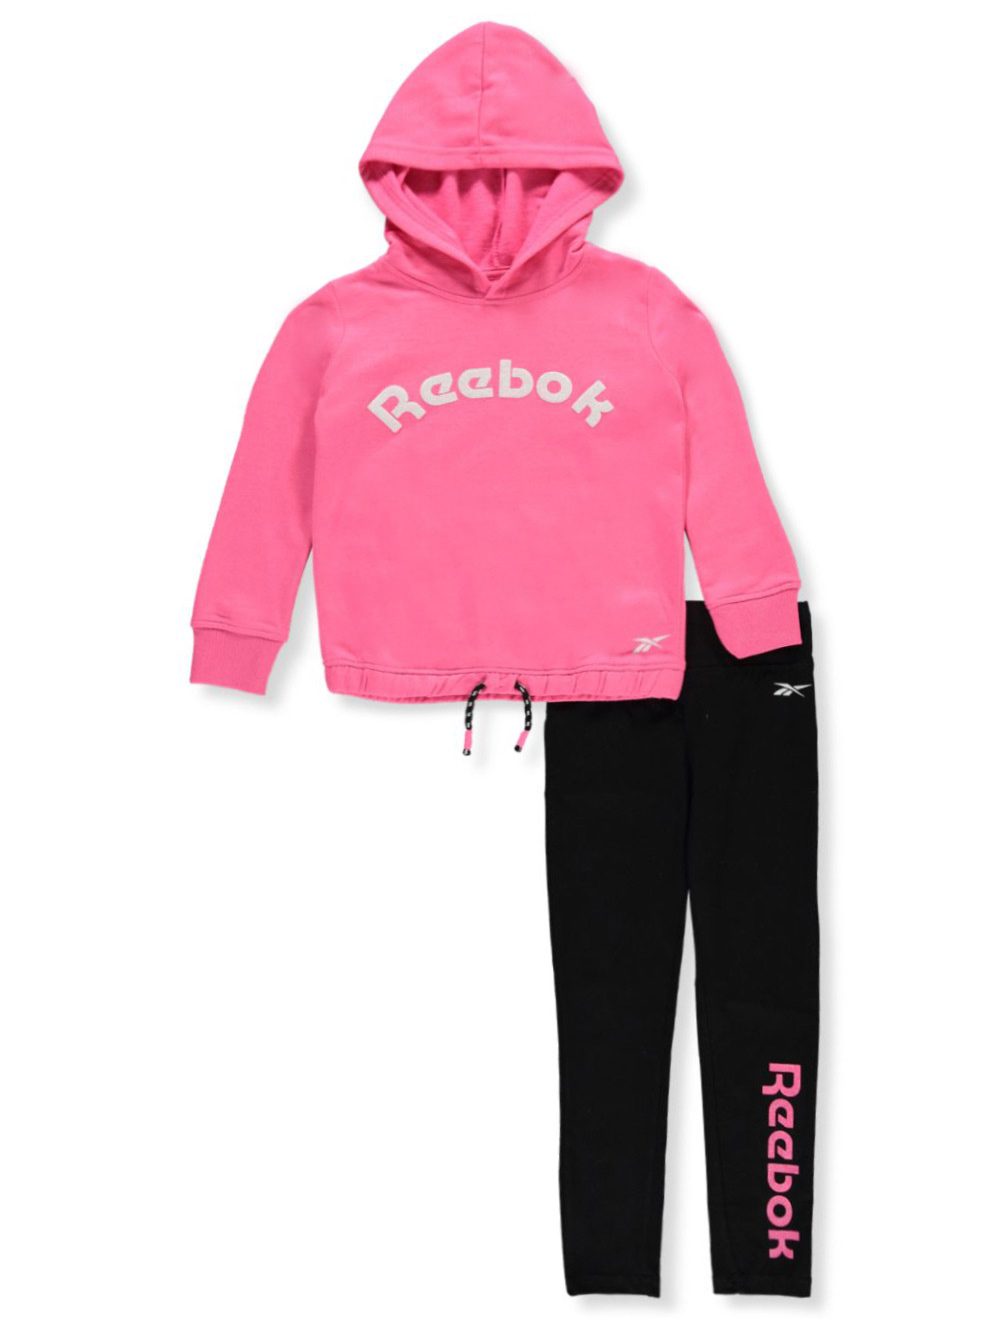 Reebok Girls' 2-Piece Leggings Set Outfit